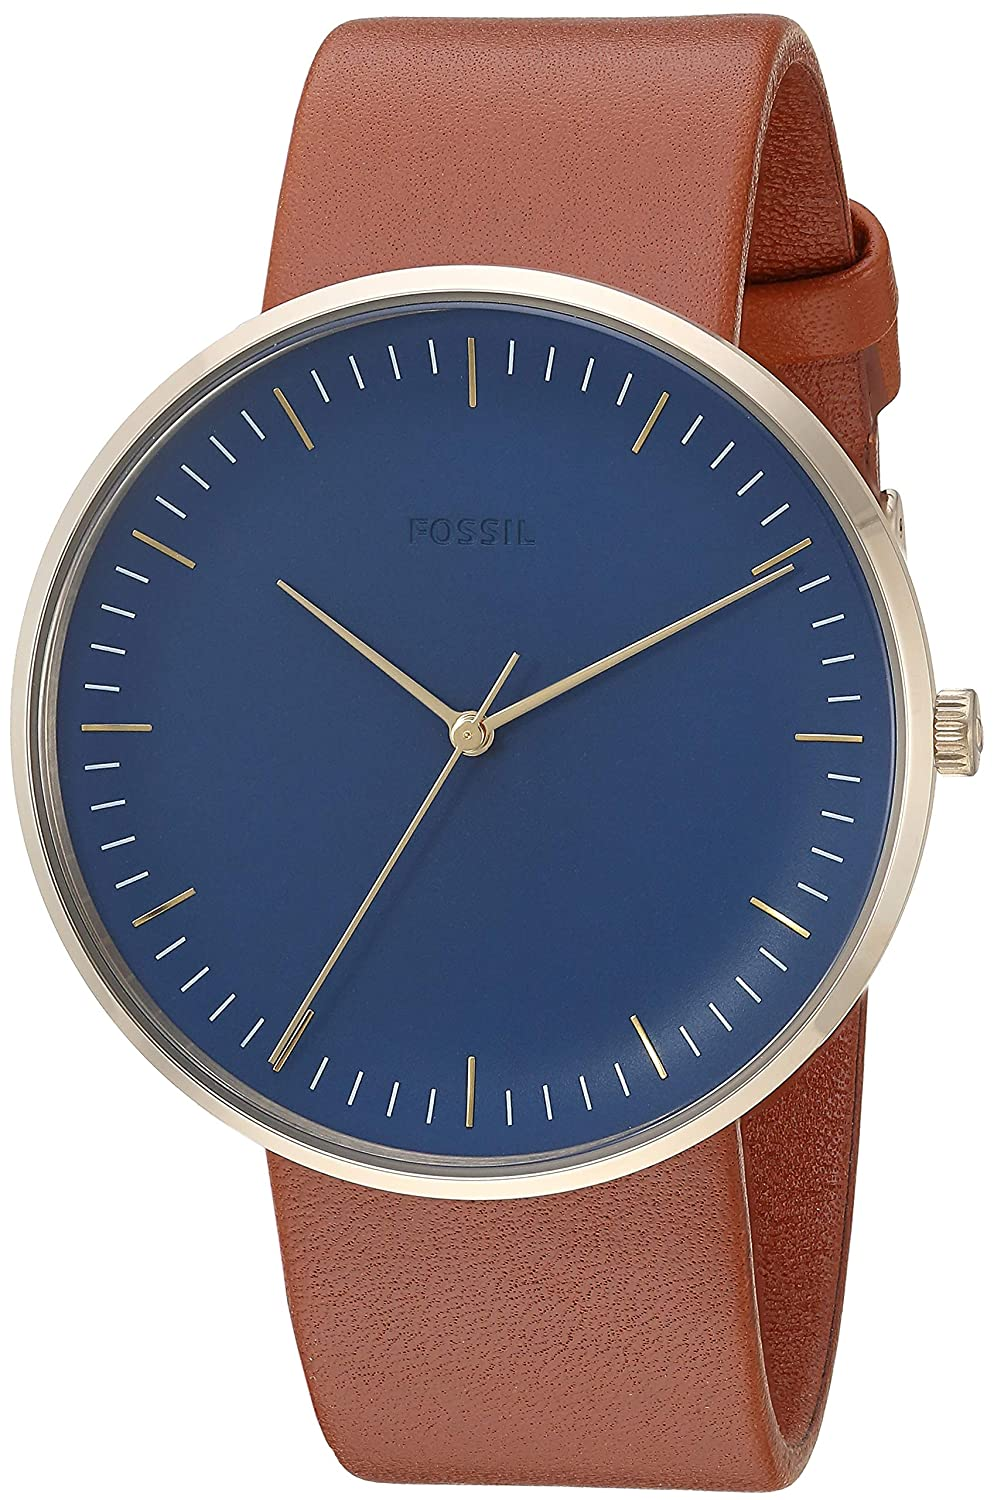 Buy Fossil The Minimalist 3h Analog Blue Dial Mens Watch Fs5473 Adc0808 8211 Simple Analoque To Digital Converter Online At Low Prices In India